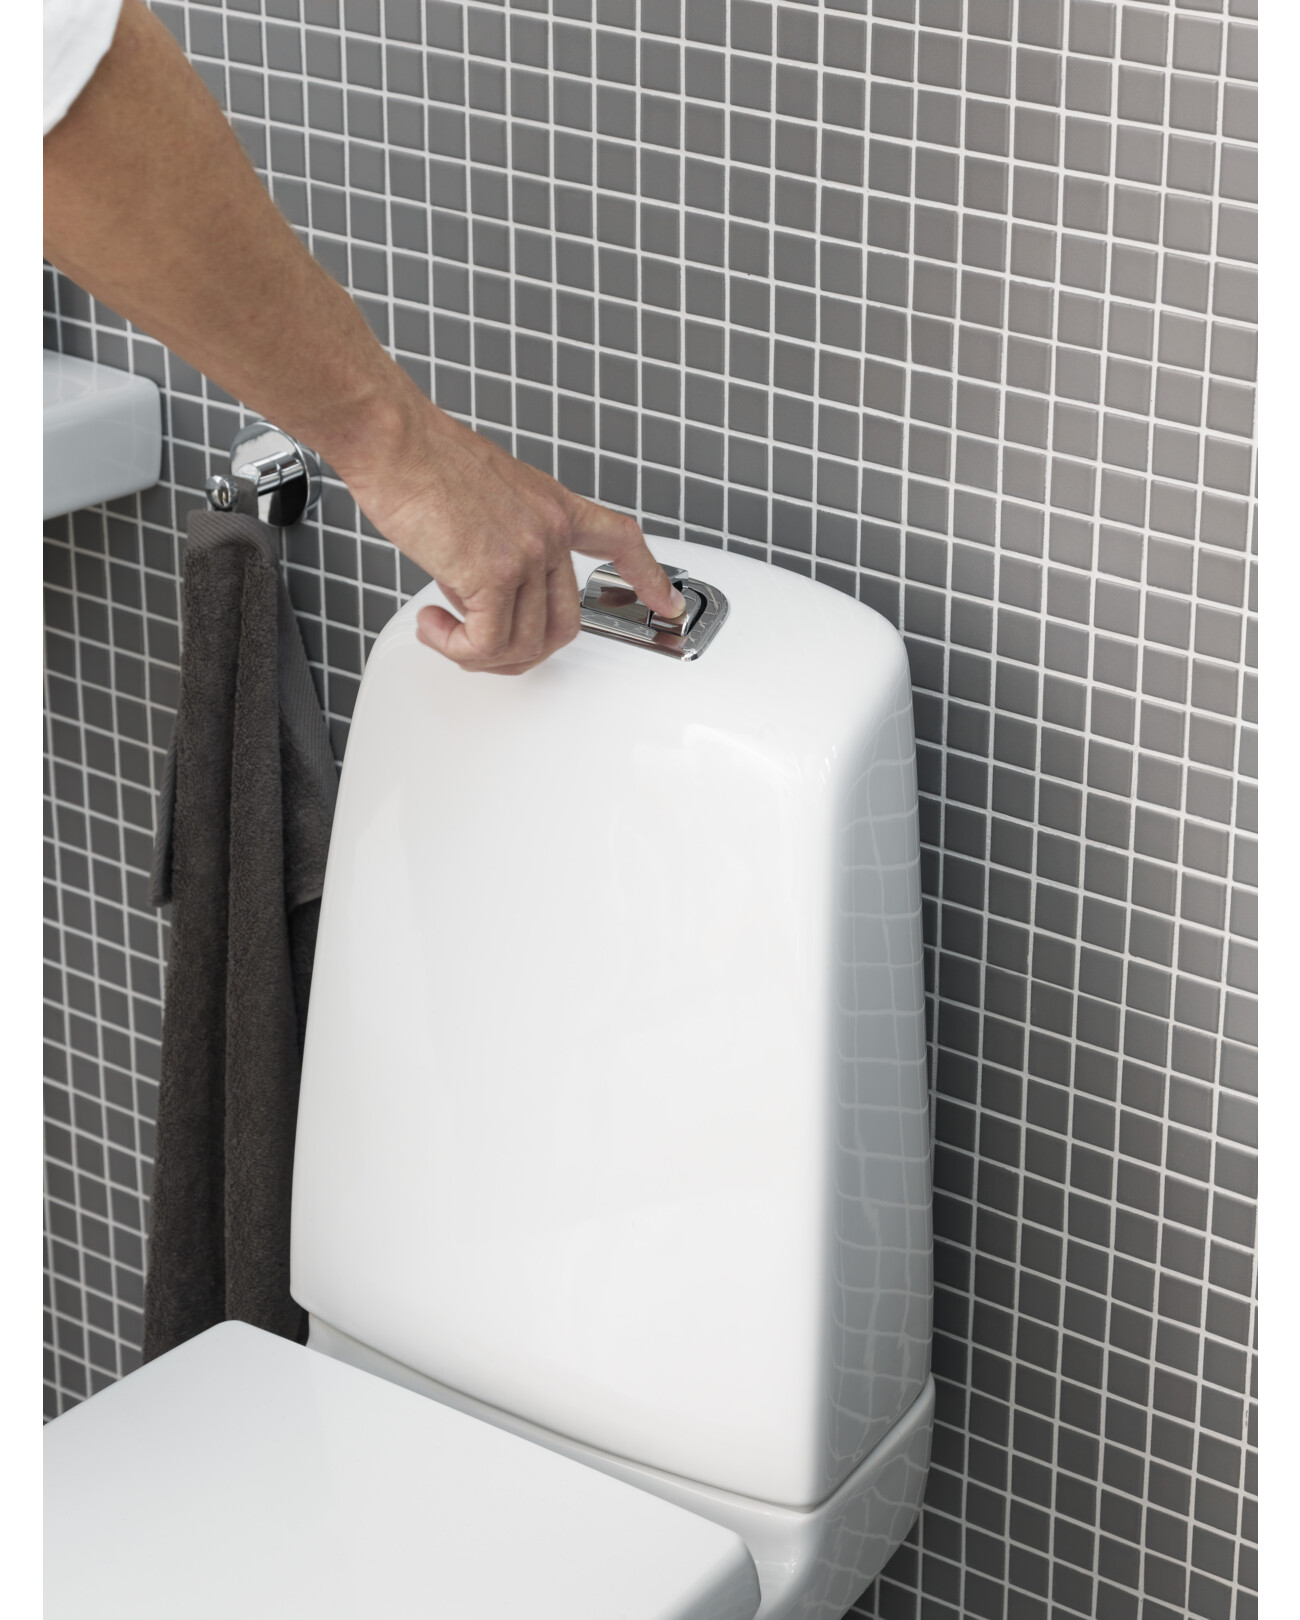 YS1 5500L.Dual flush 2/4 L, without seat, Ceramicplus